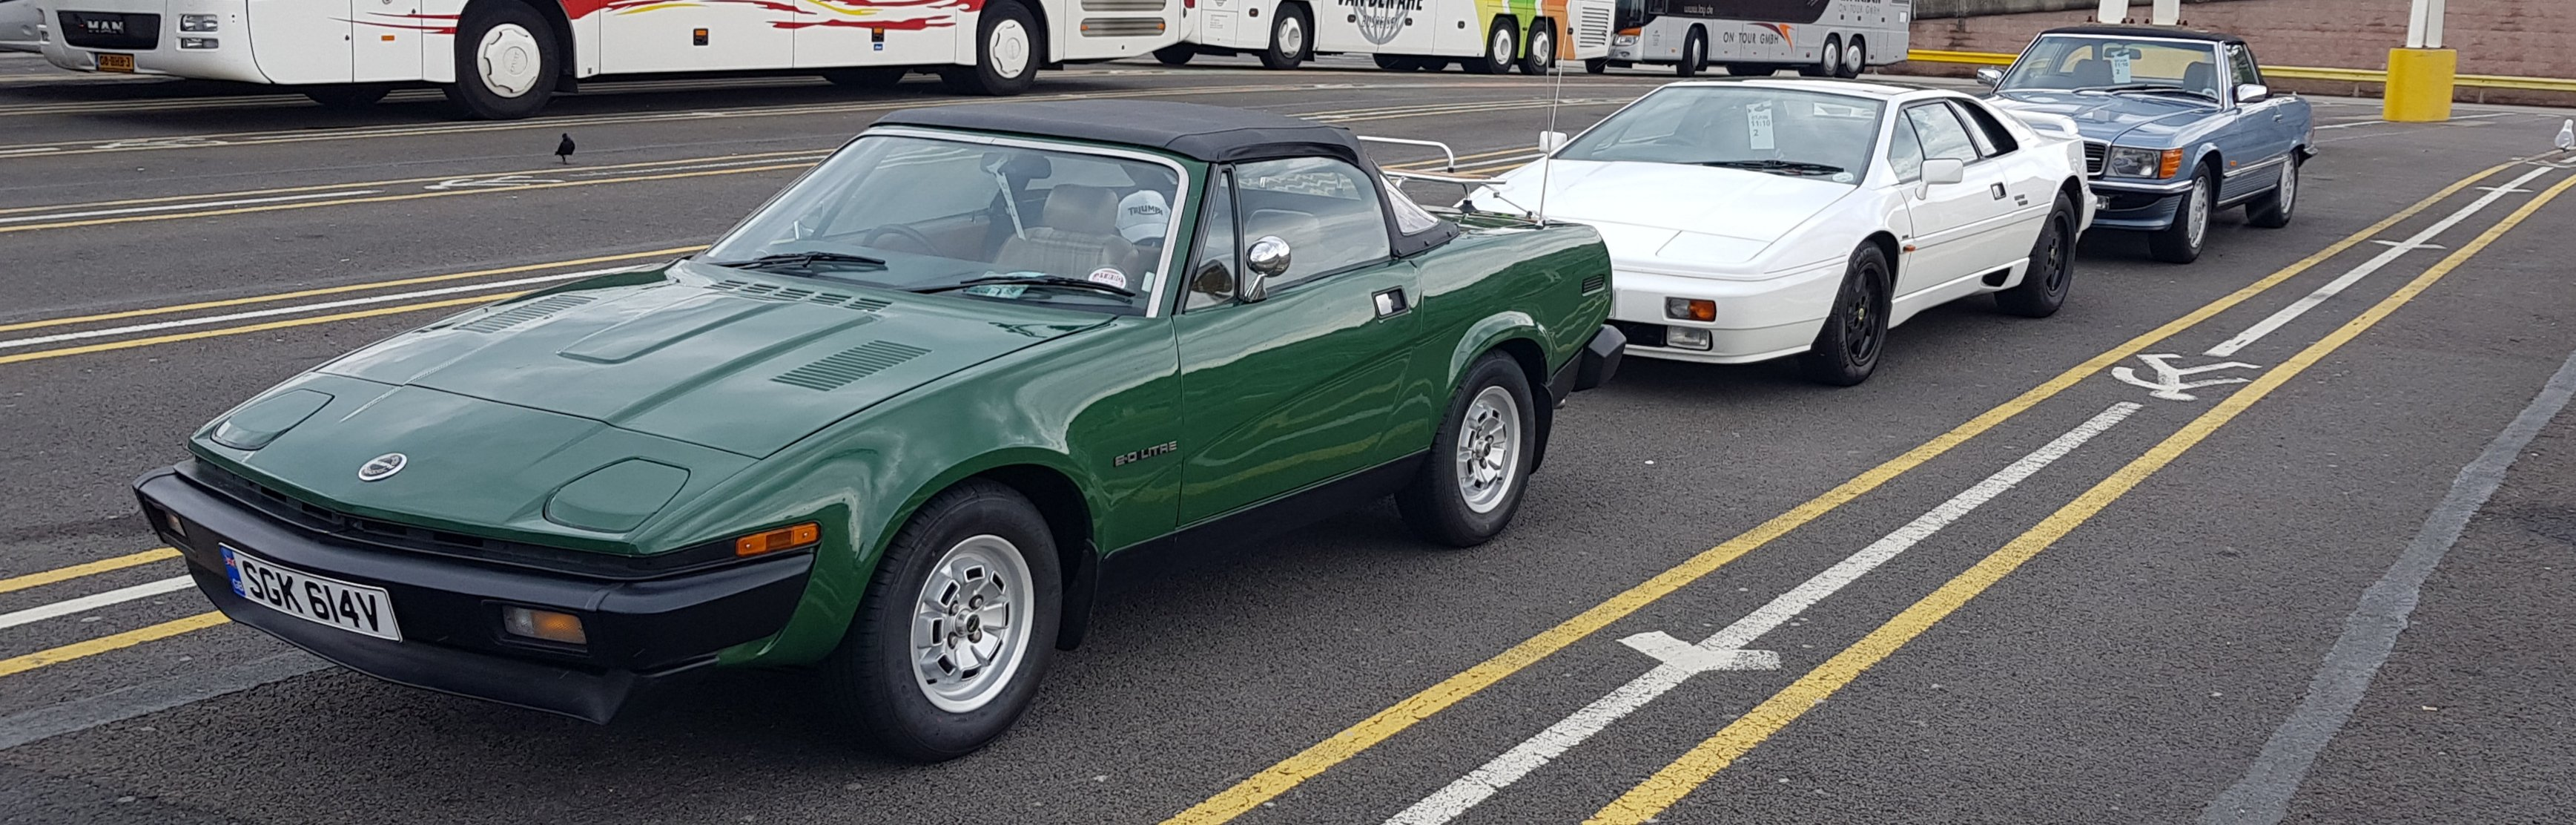 1980 TR7 for Sale For Sale (picture 1 of 6)